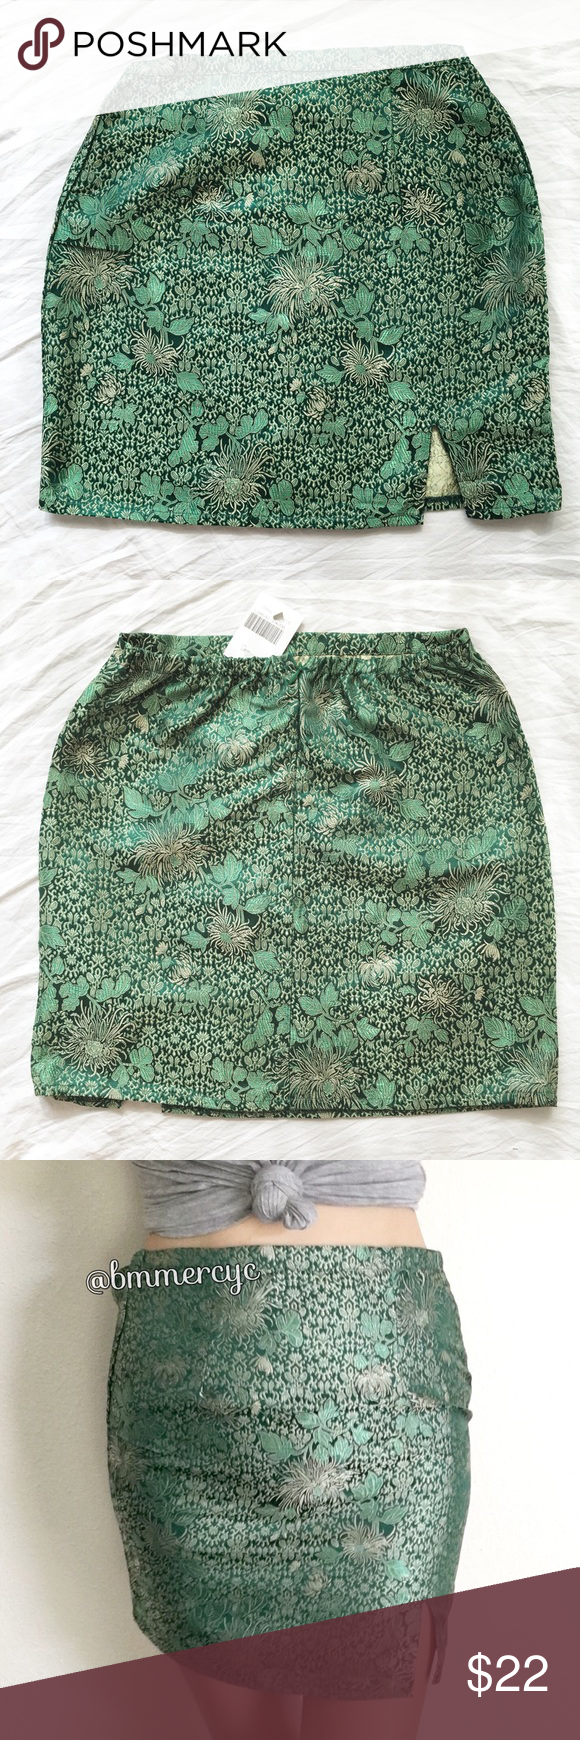 """BNWT green Chinese silky Moss skirt Size: xs/s/24/25 15"""" length, 17.5"""" hip, 11.5"""" waist (stretchy)  Silky Chinese floral print skirt in green and gold with an elasticized waist, hidden zipper opening in the back and a front slit. Retail at $26  ❌ Lowballers will be blocked 👋🏻 Brandy Melville Skirts Mini"""